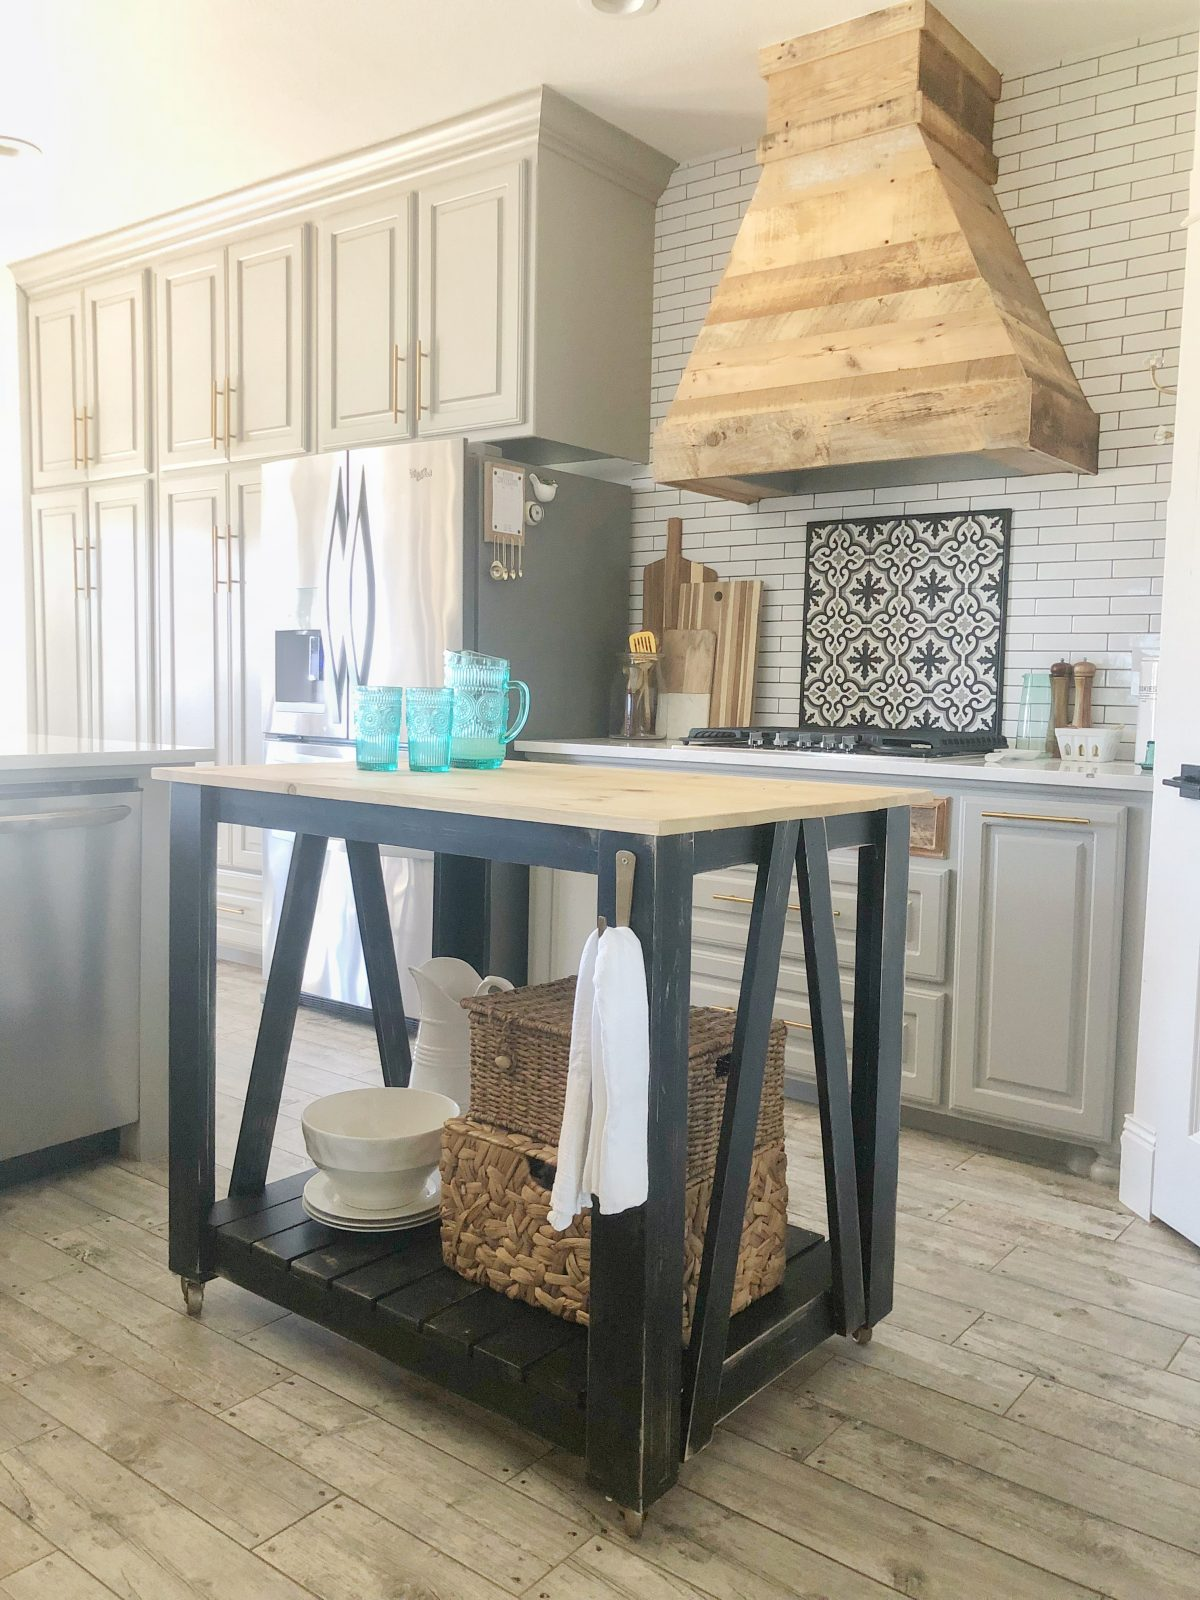 Kitchen Island Design Template Diy Modern Farmhouse Kitchen Island Cart Shanty 2 Chic